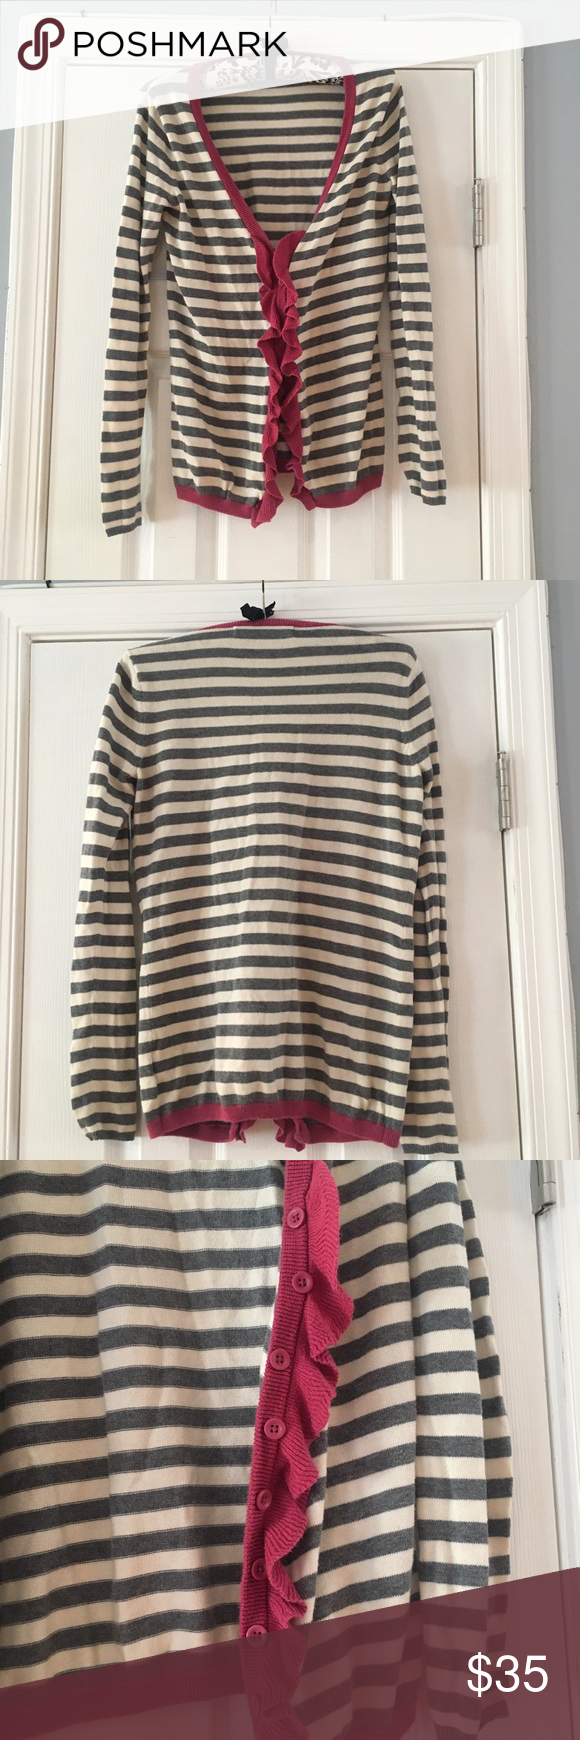 Sparrow | Striped and Ruffled Sweater 🌺 Pretty and soft sweater by Sparrow, from Anthropologie. Grey and off-white stripes, and pink button and ruffle accents. 100% Cotton Anthropologie Sweaters Cardigans